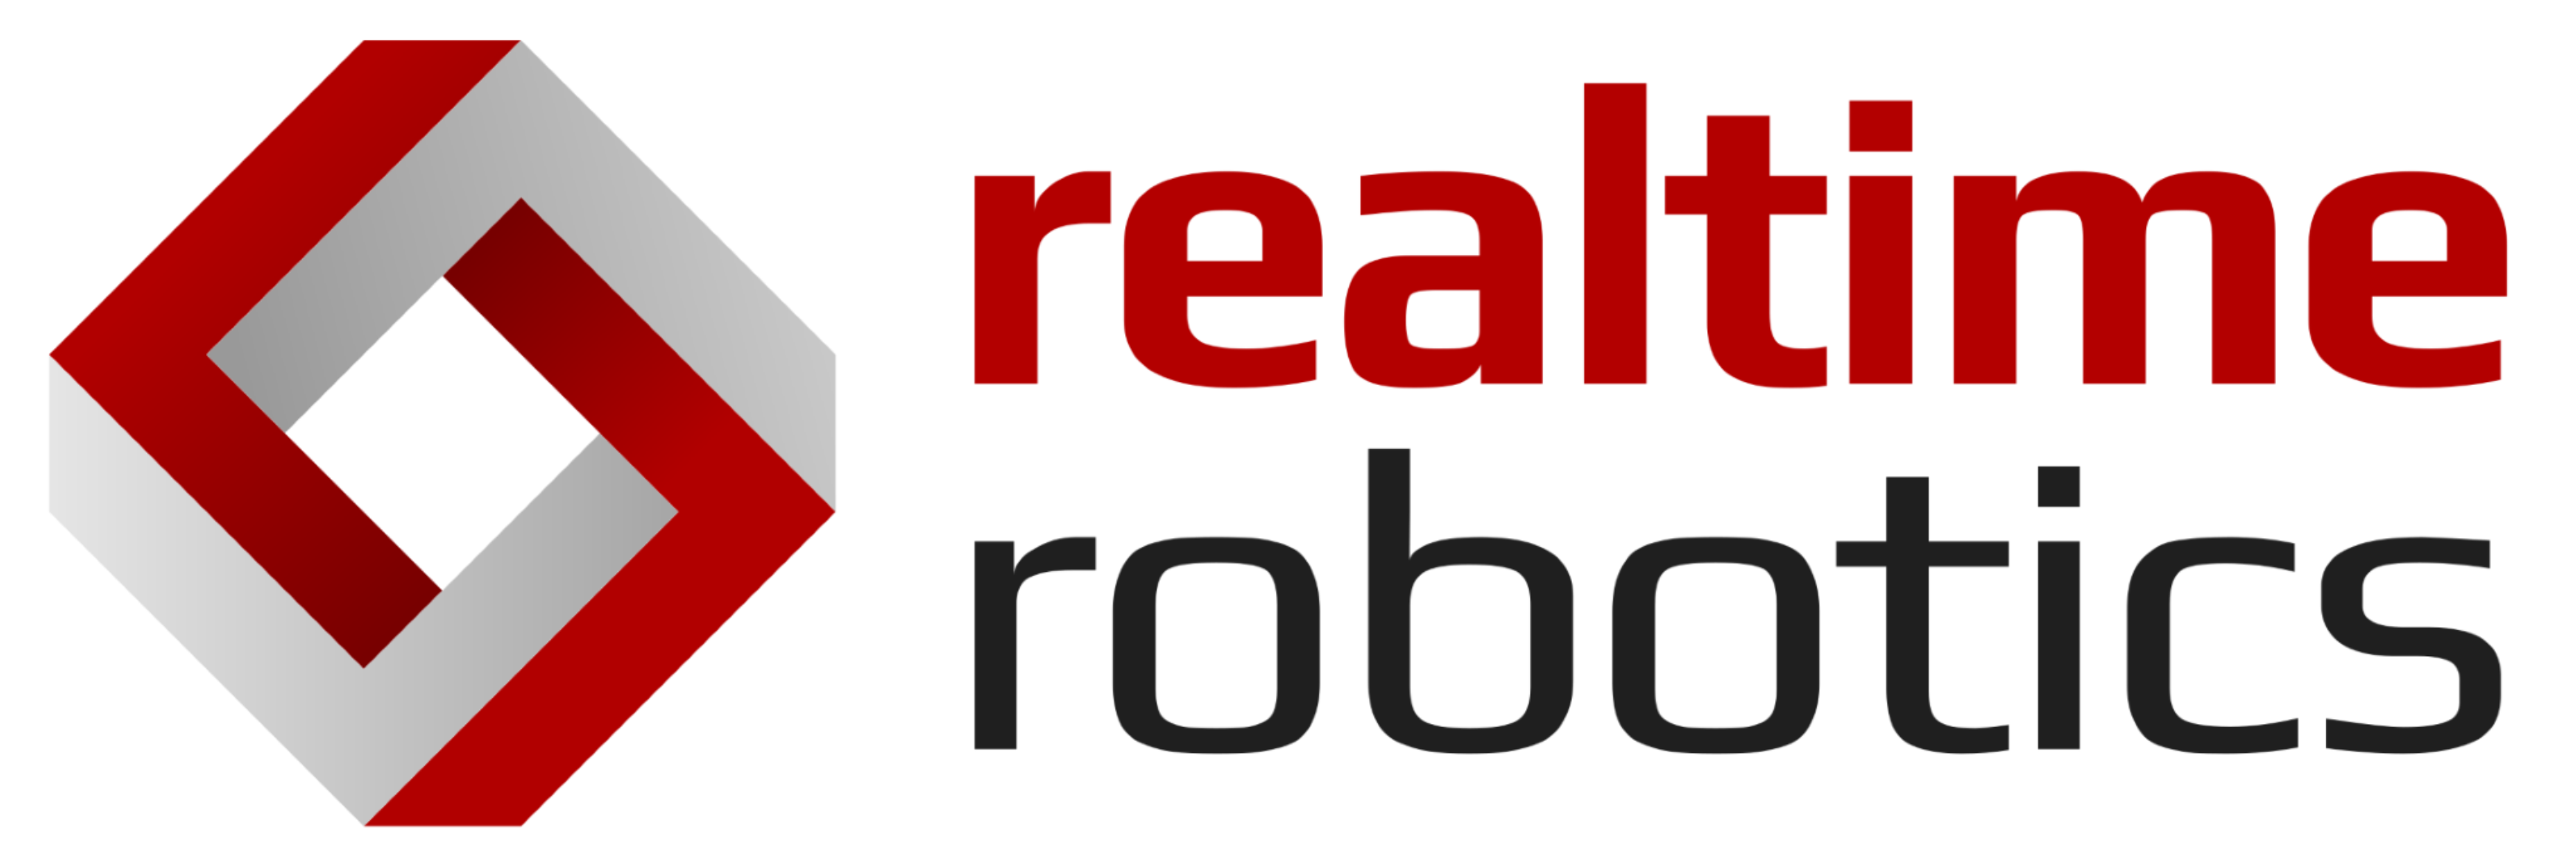 real time robotics png.png